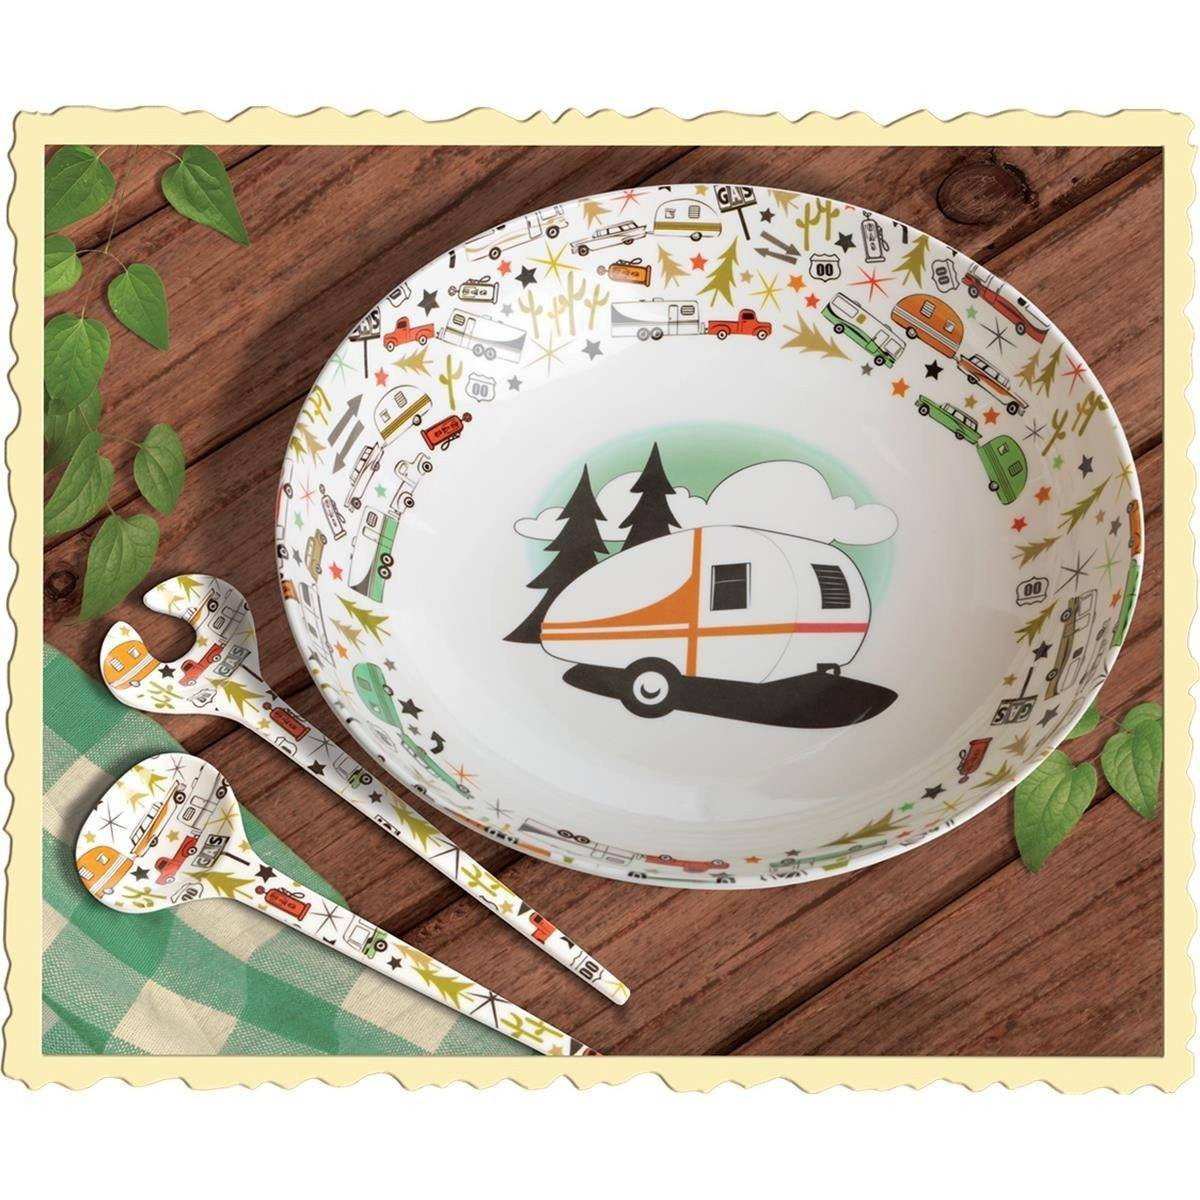 Serving Bowl & Servers Camping Set